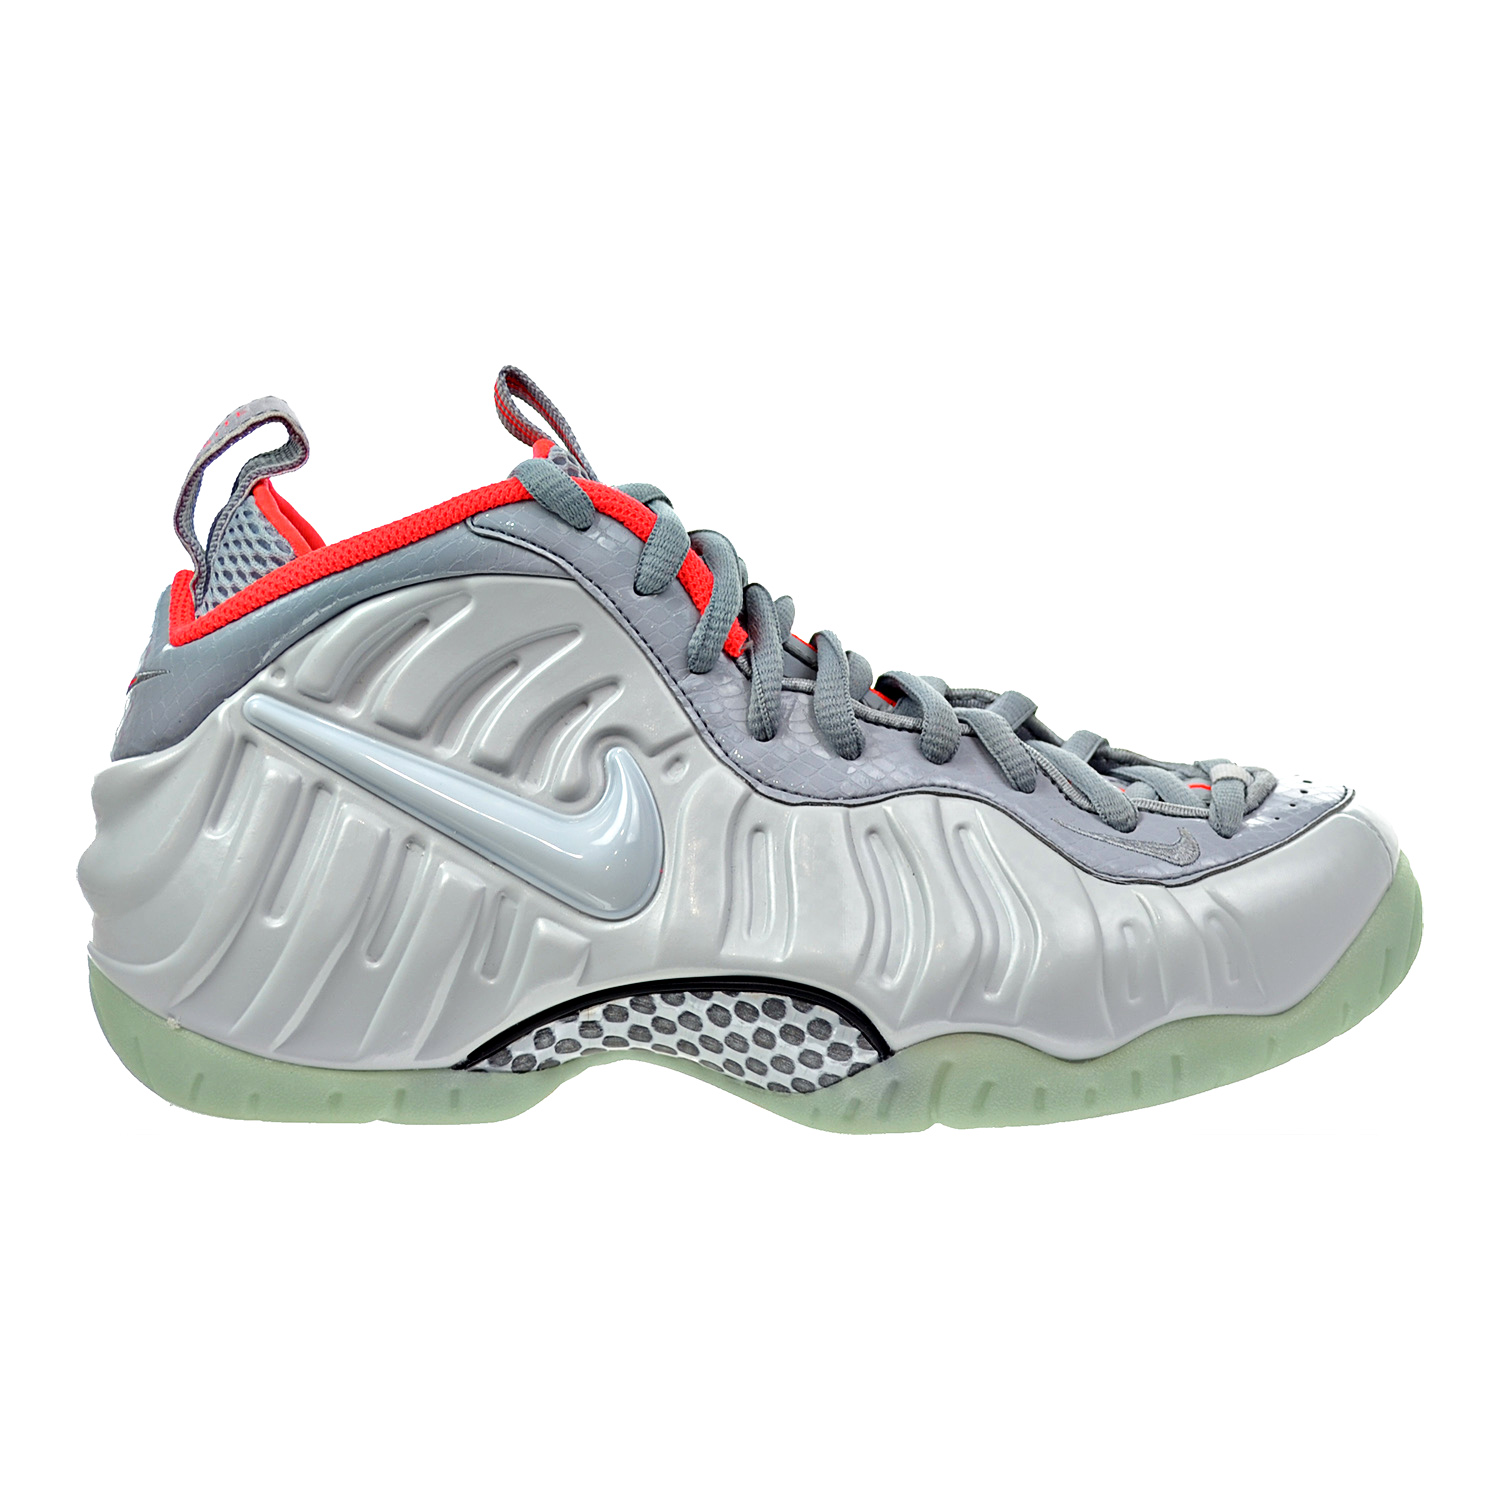 Nike Air Foamposite Pro Premium Men's Shoes Pure Platinum Wolf Grey616750-003 by Nike